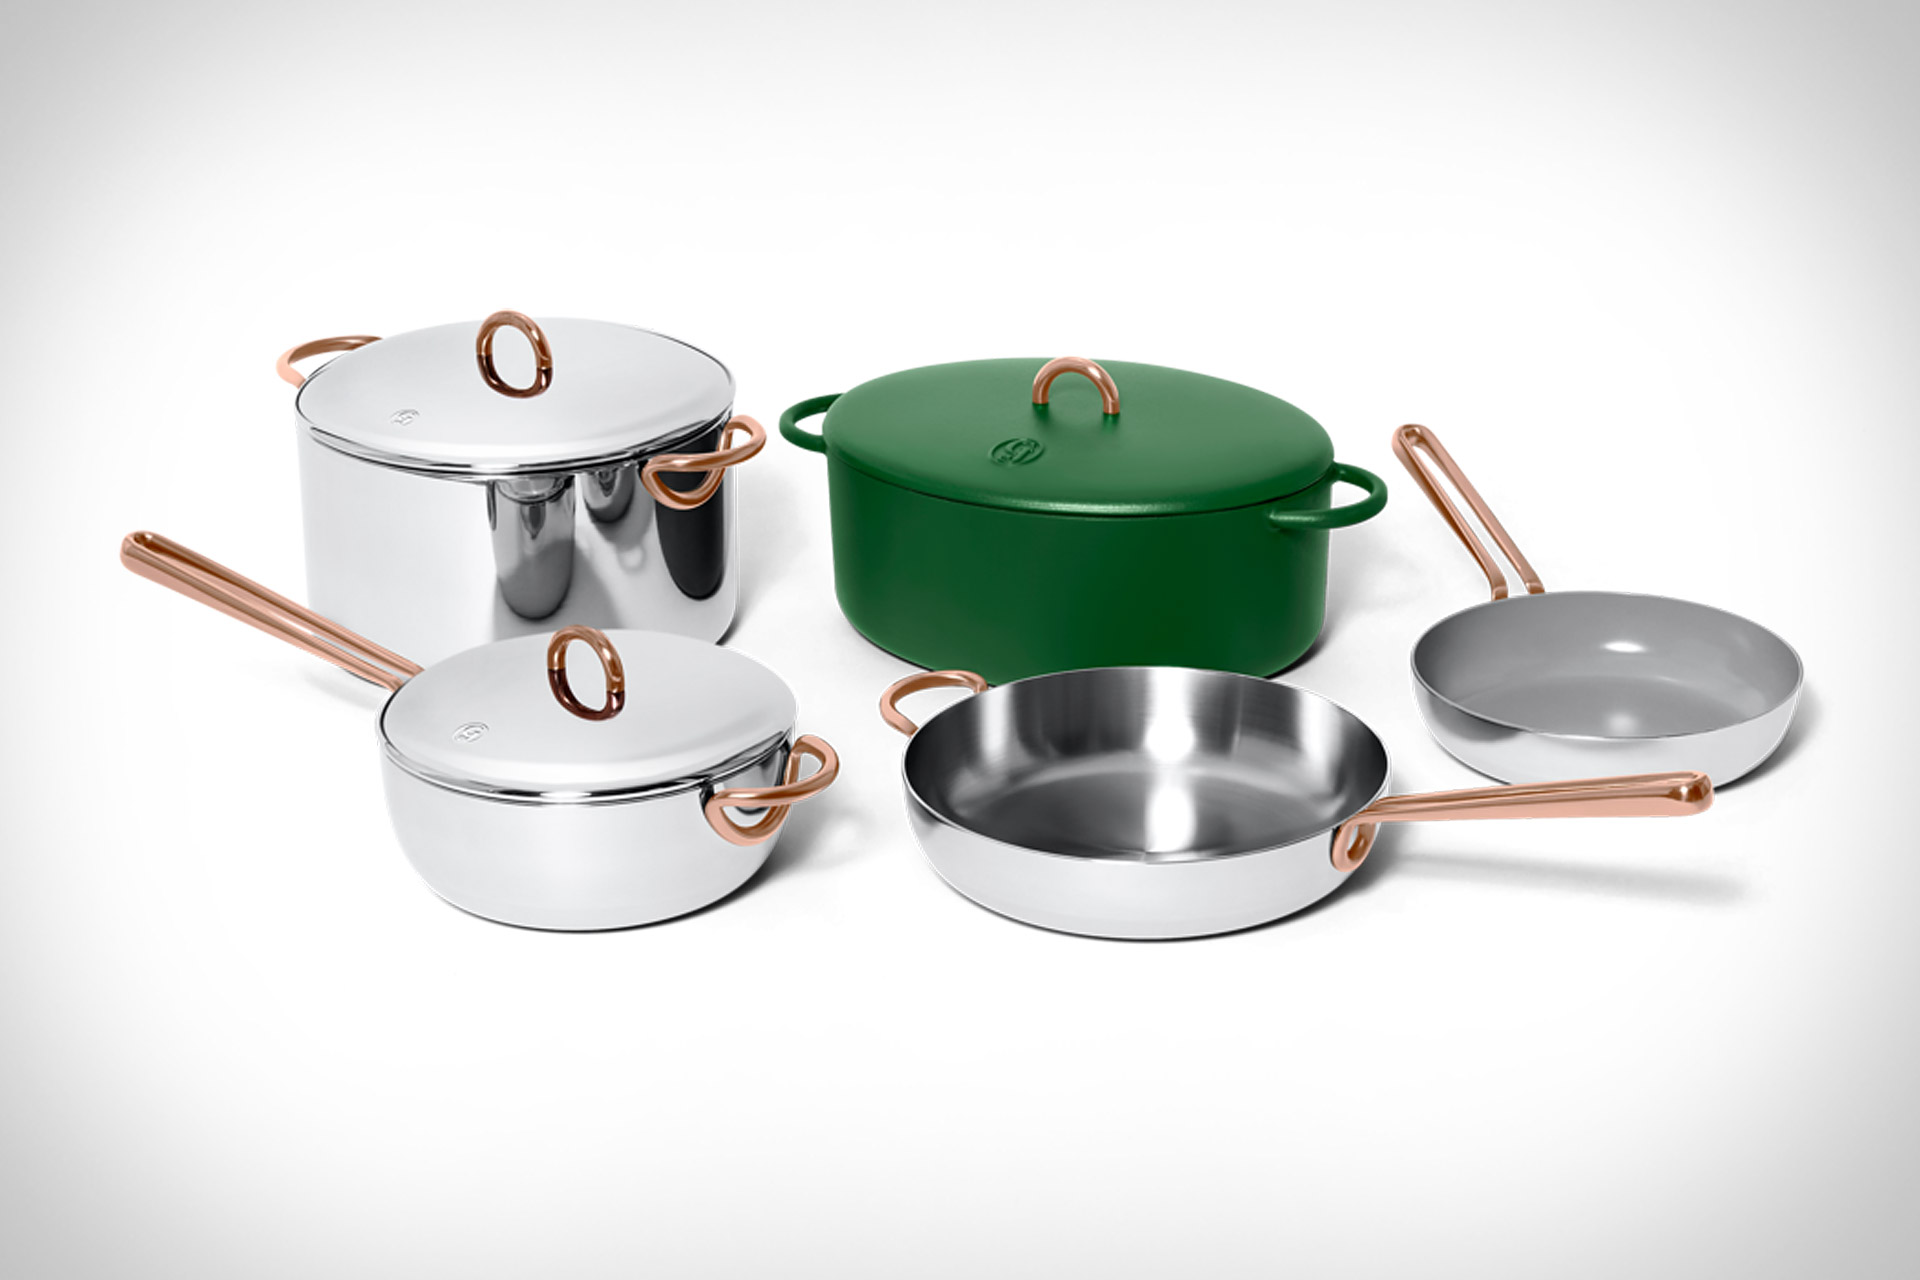 High-End cookware designed and produced by Great Jones.